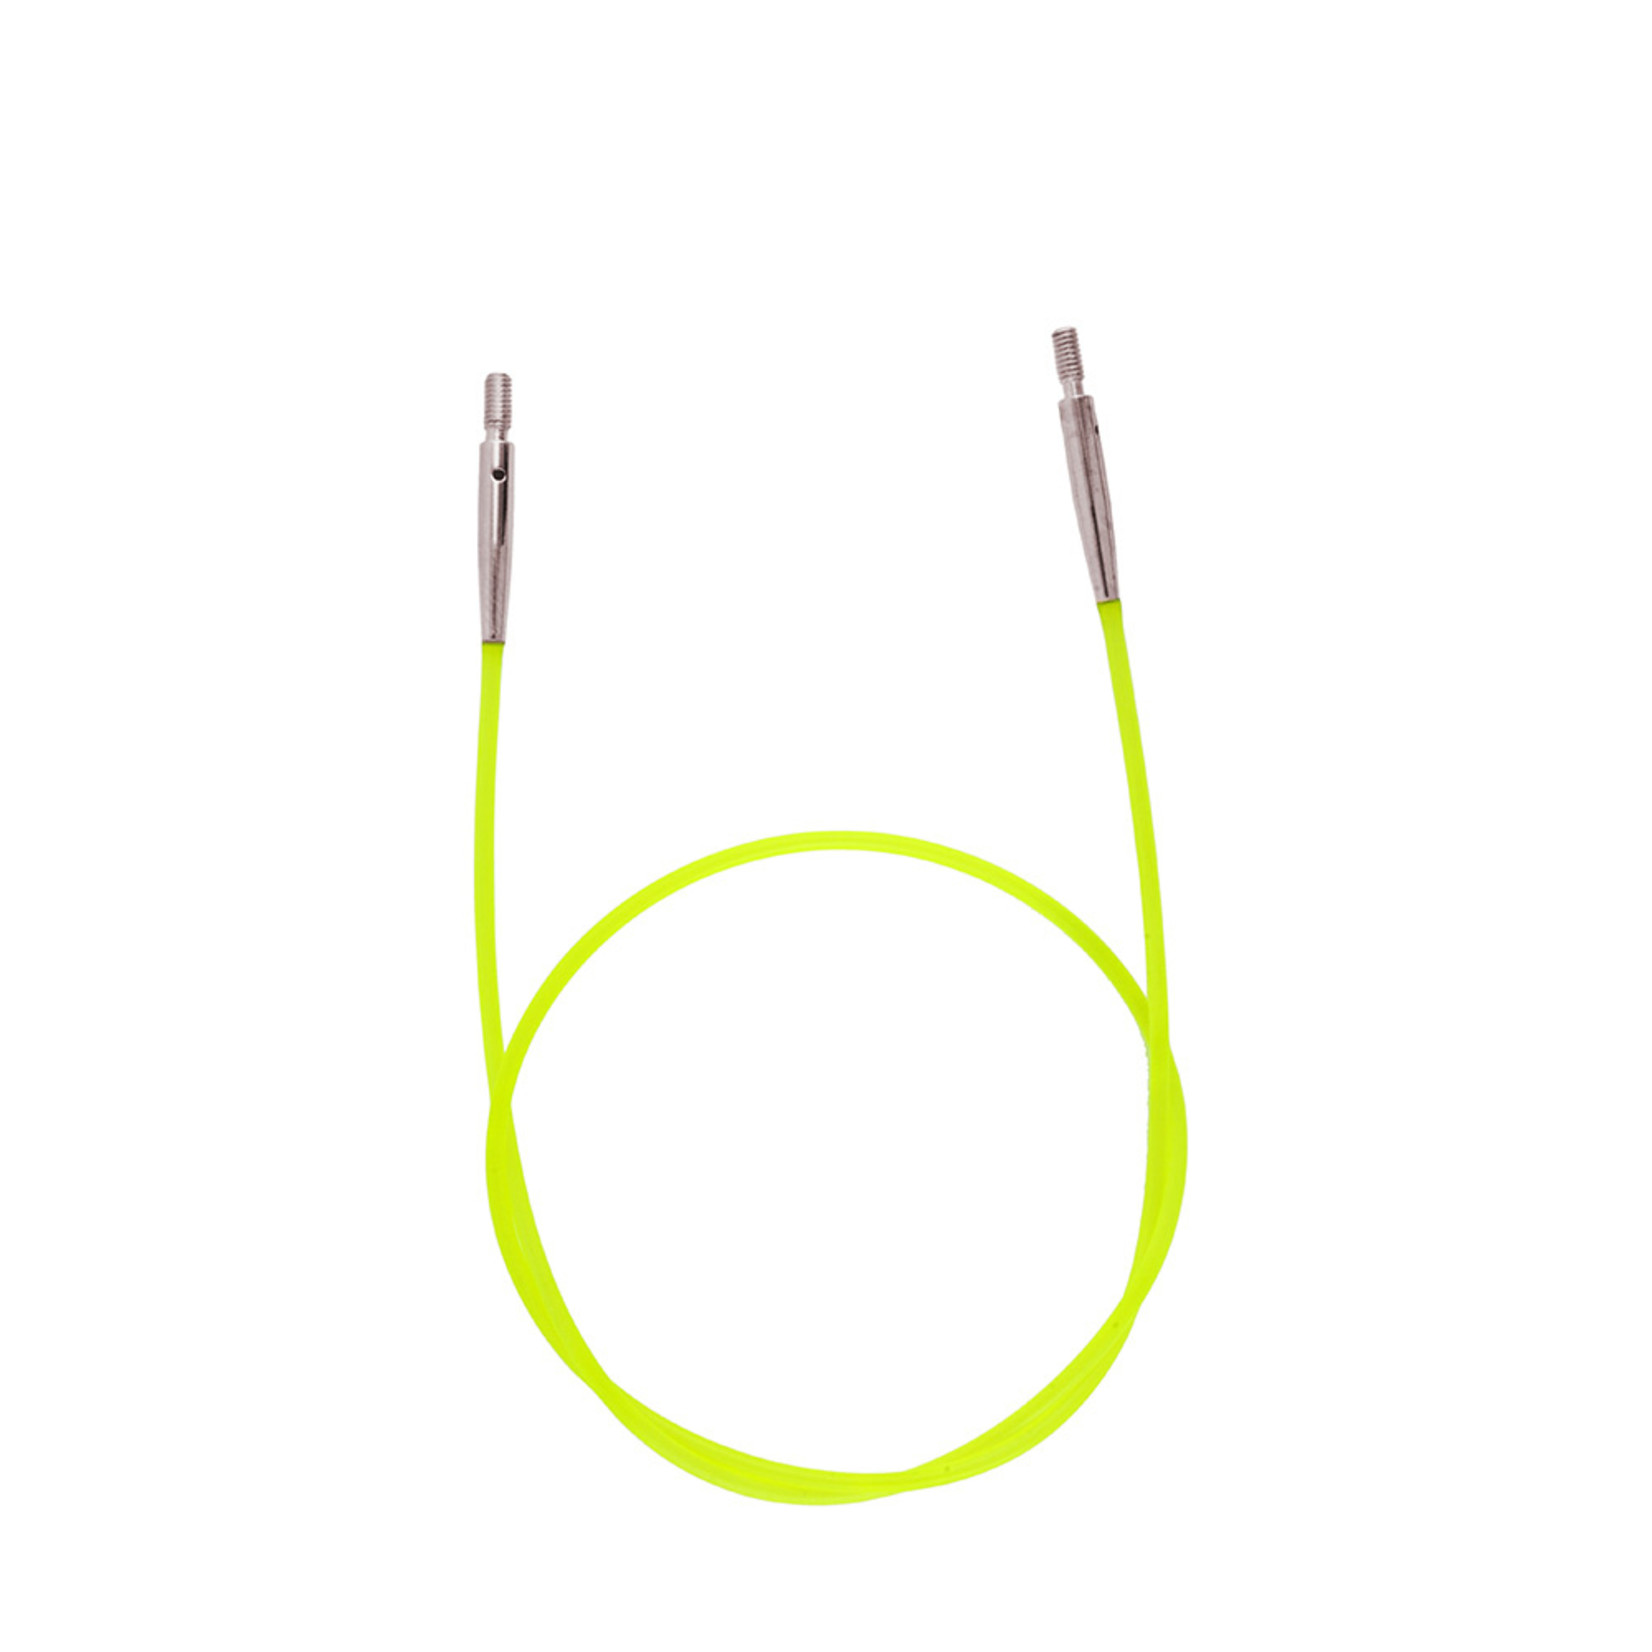 Knitter's Pride Knitter's Pride Cable